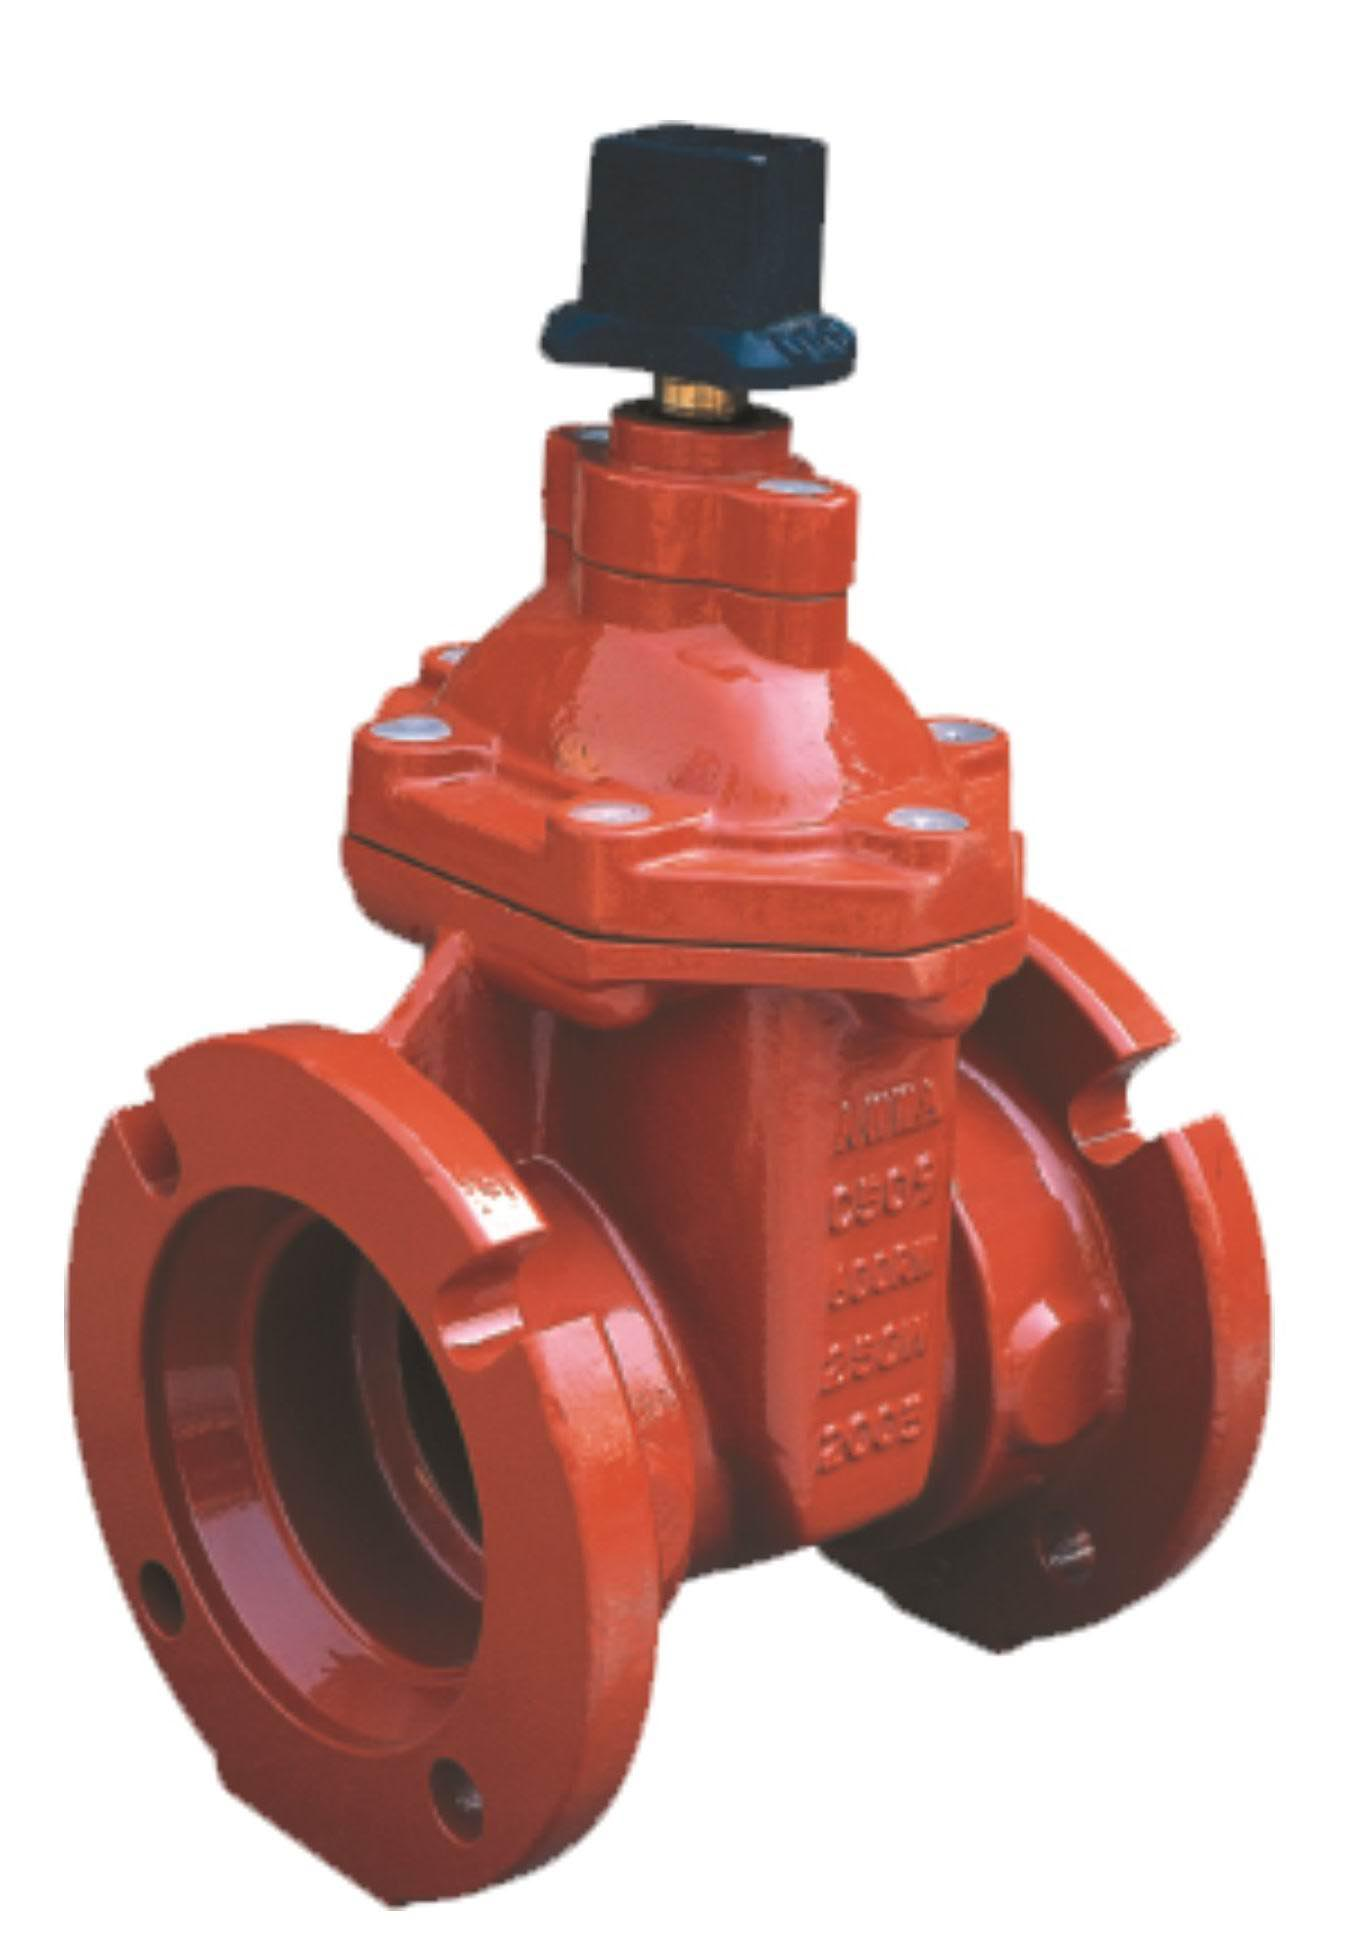 Mechanical Joint Ends NRS Resilient Seated Gate Valves-AWWA C509-UL/FM Approval